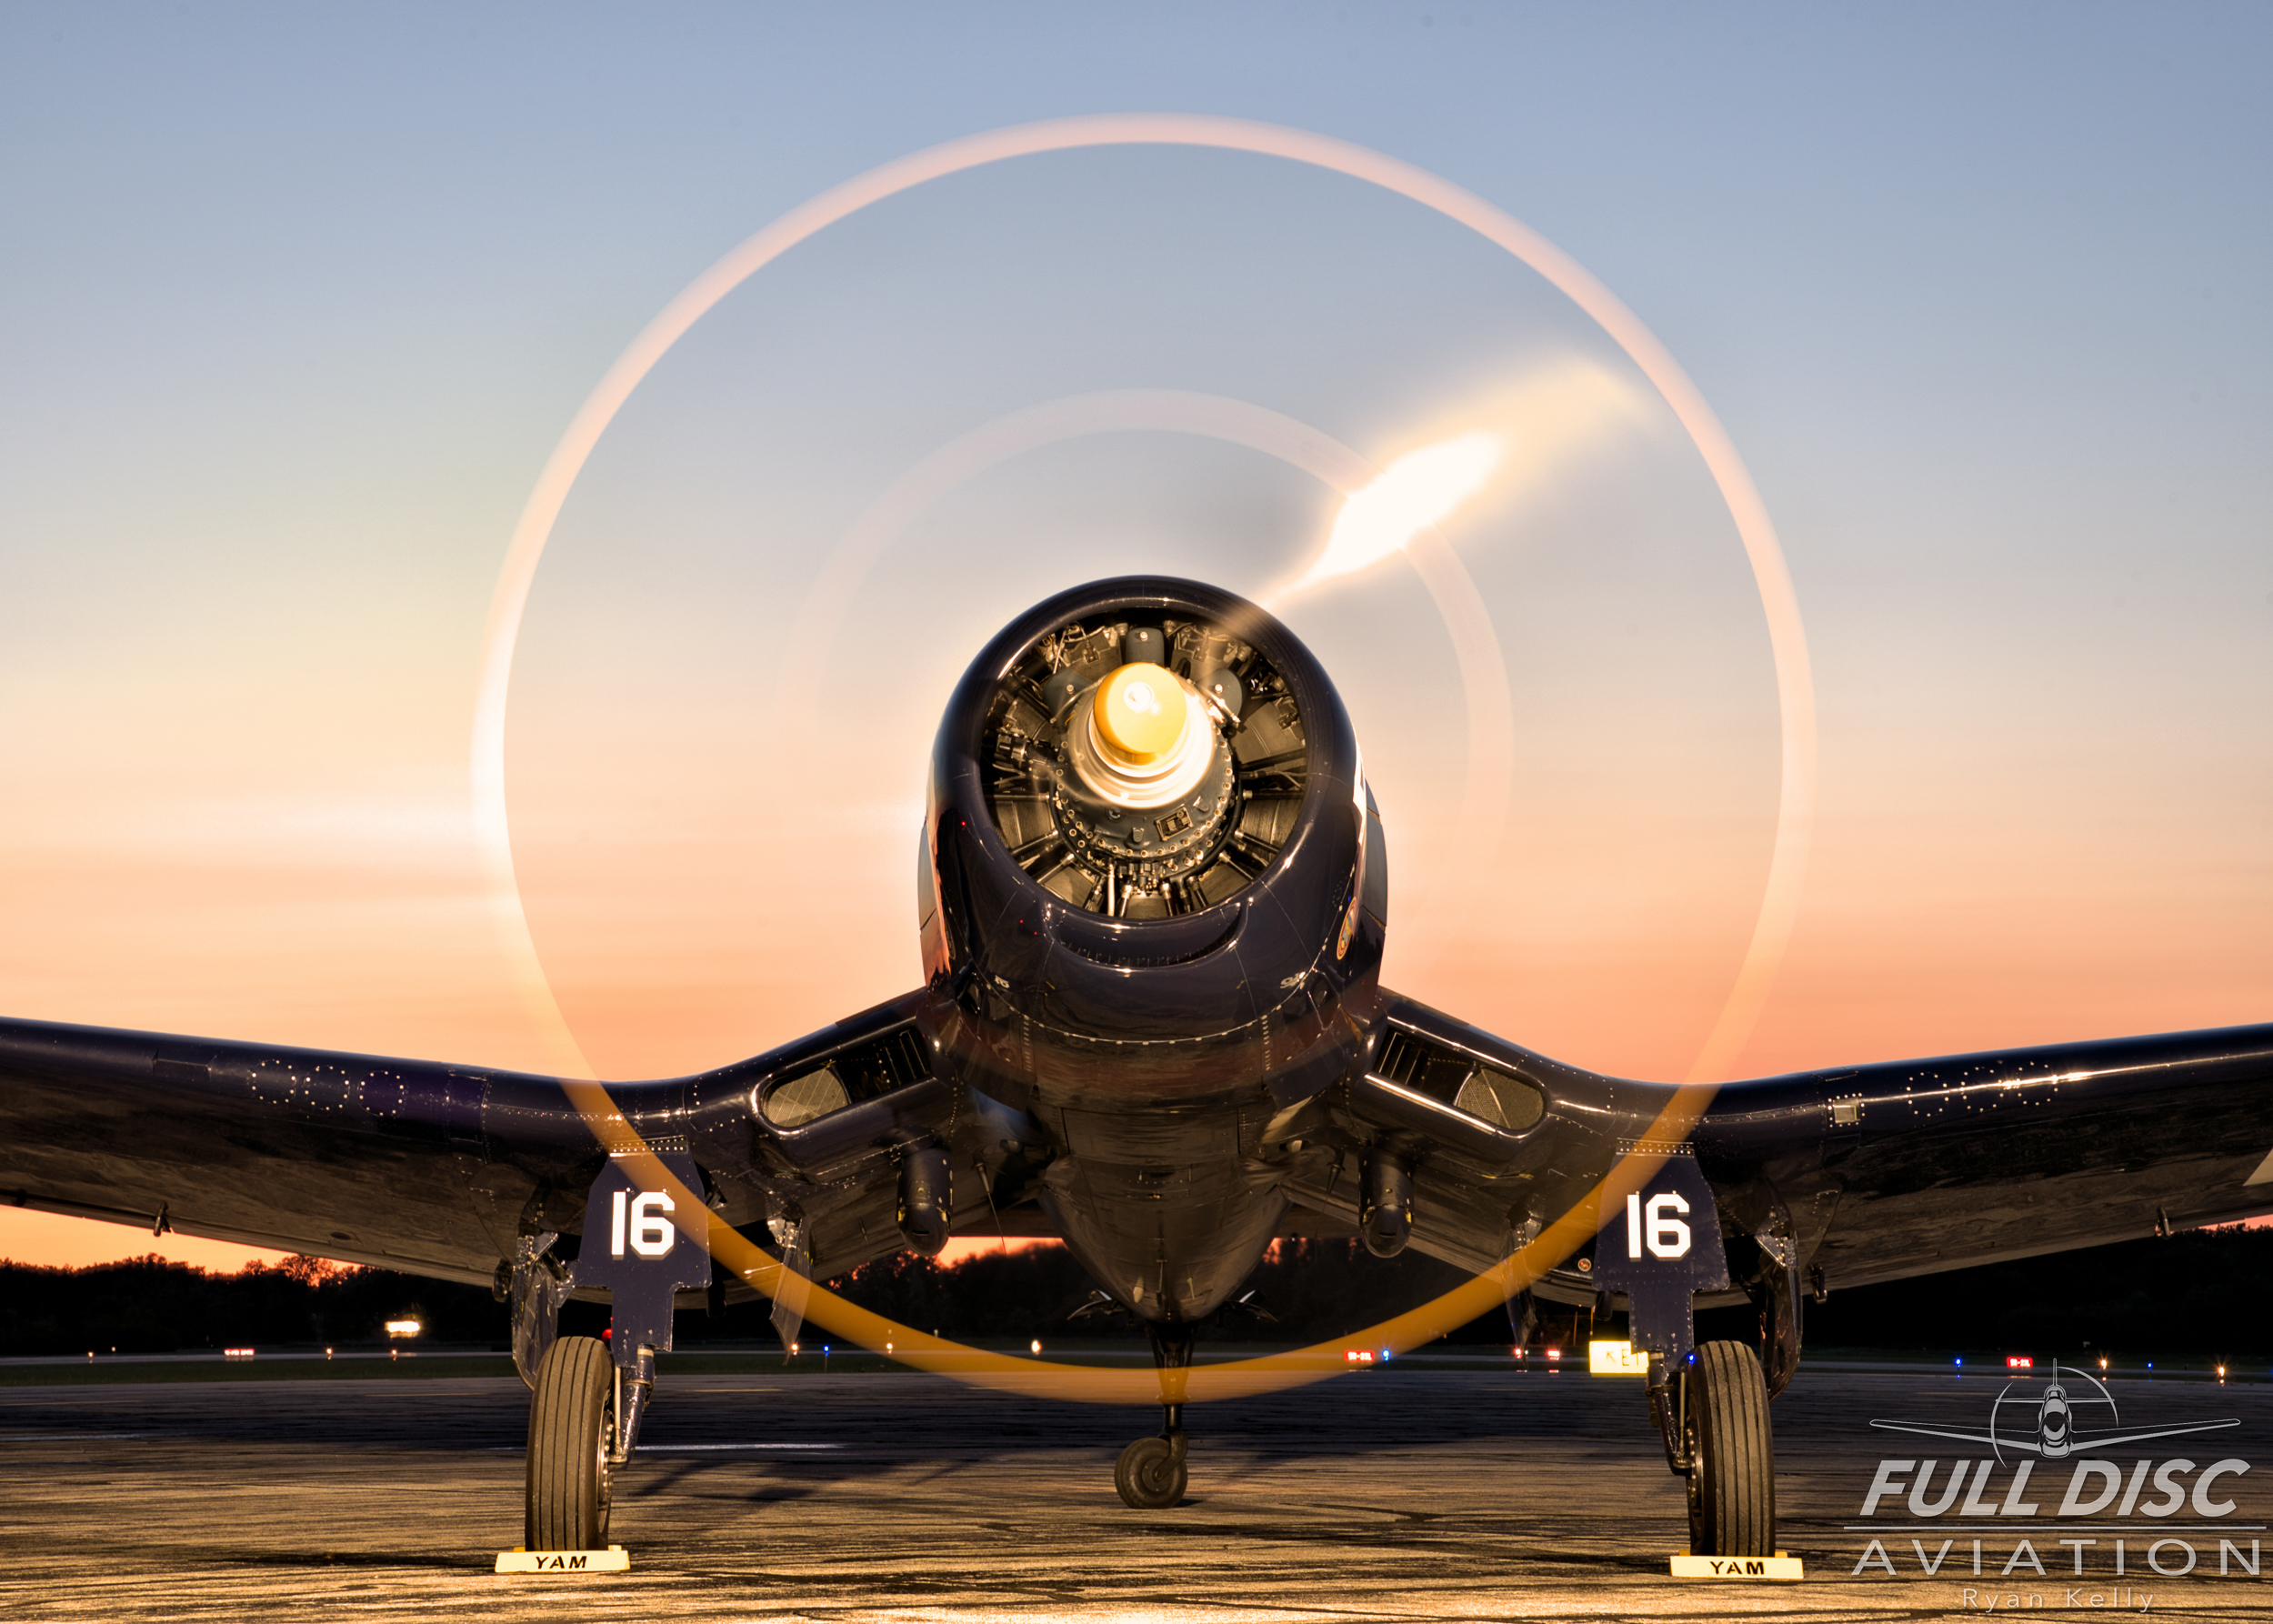 ClassOf45_FullDiscAviation_RyanKelly_August 01, 2019_20.jpg